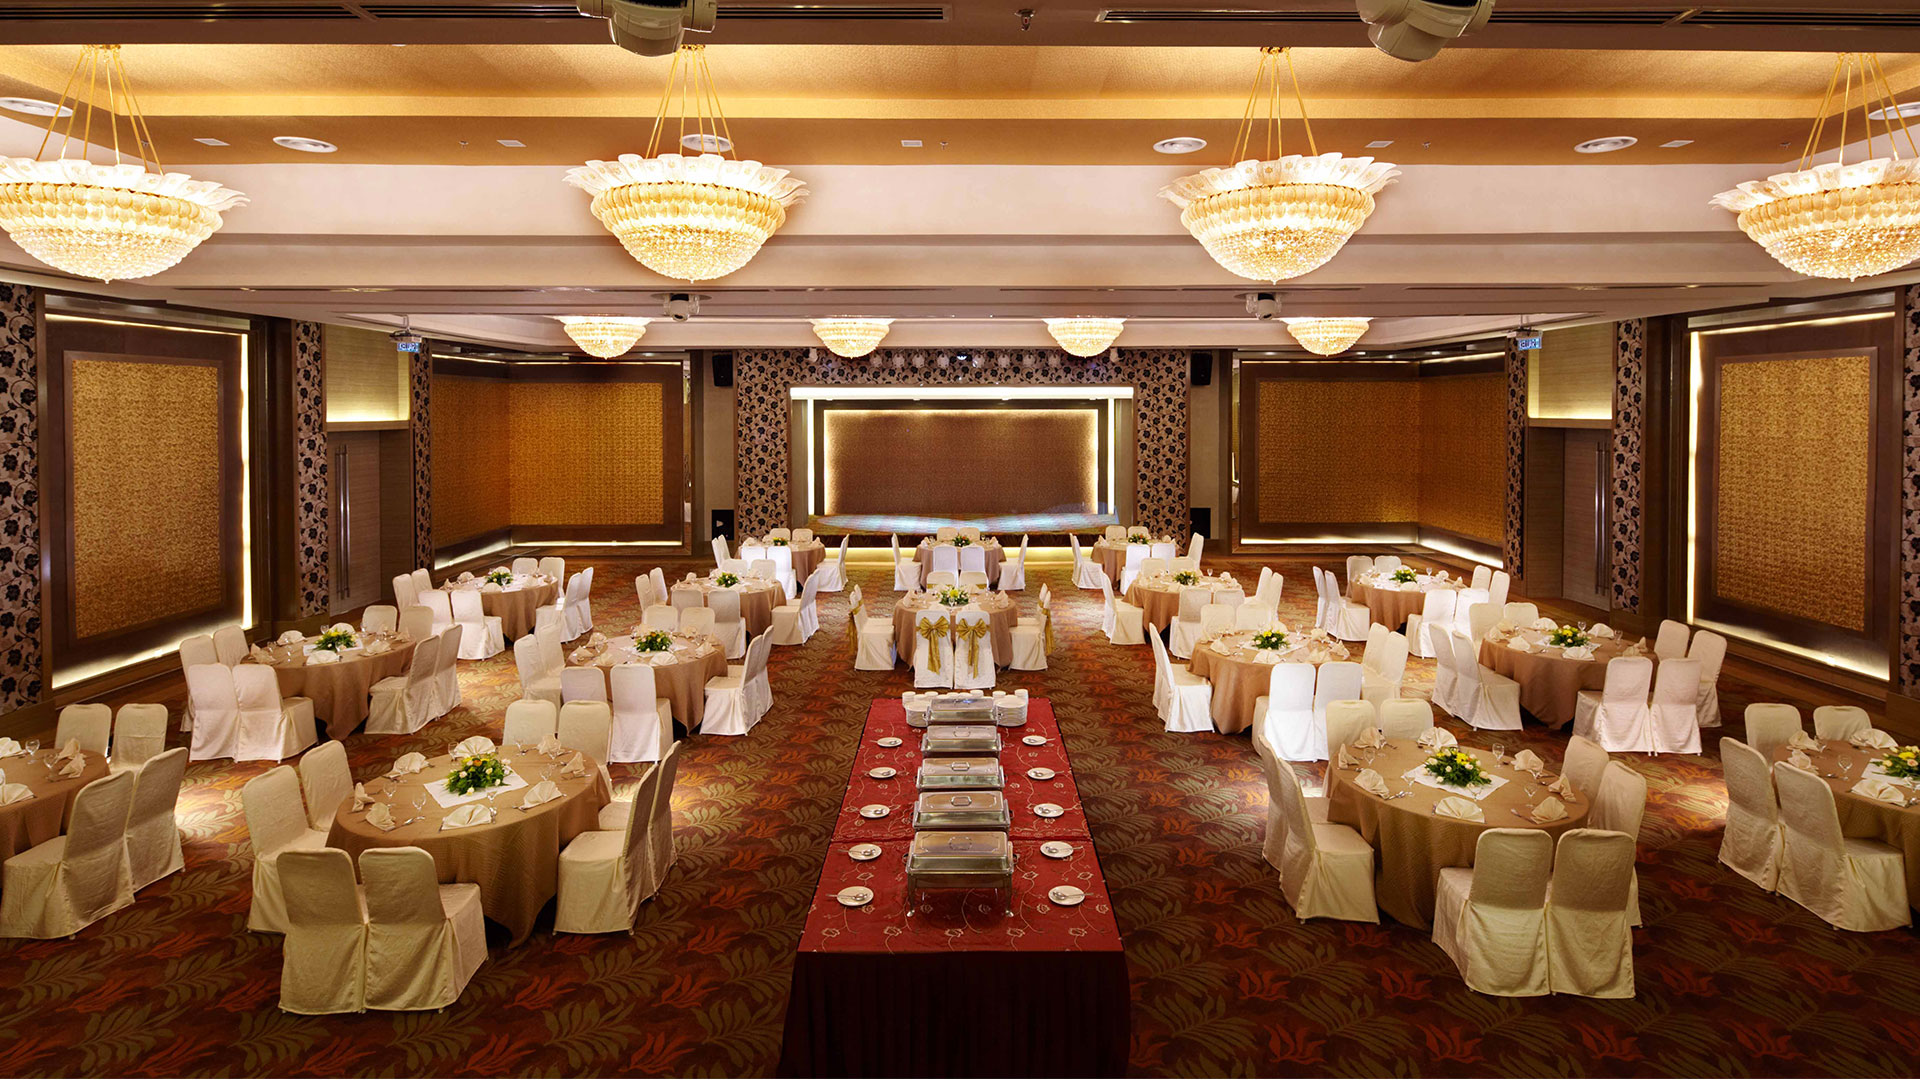 Tropicana Ballroom Ipoh wedding banquet tai thong group